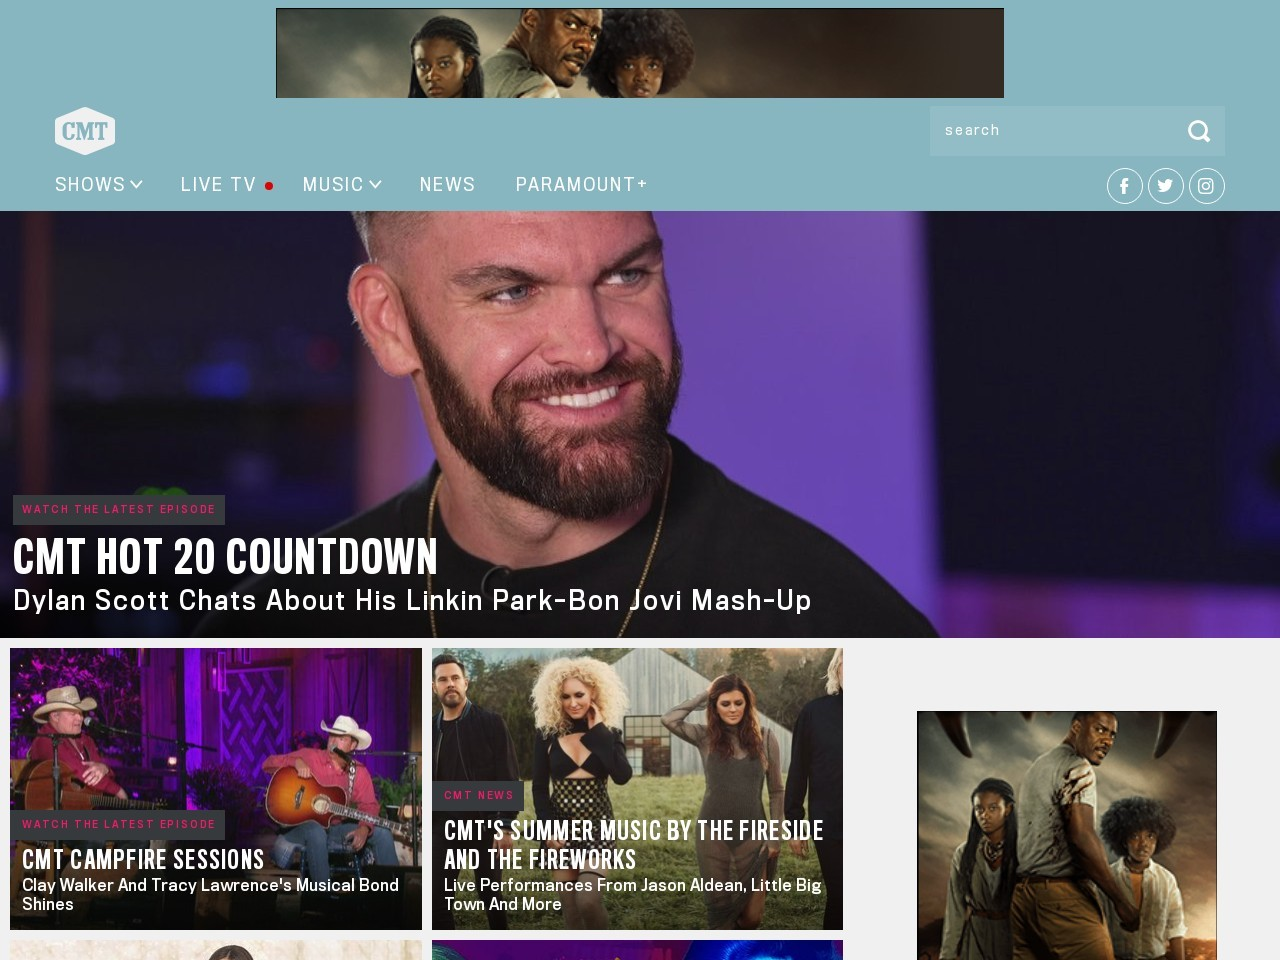 http://www.cmt.com/community/sweepstakes/2016/Brantley/